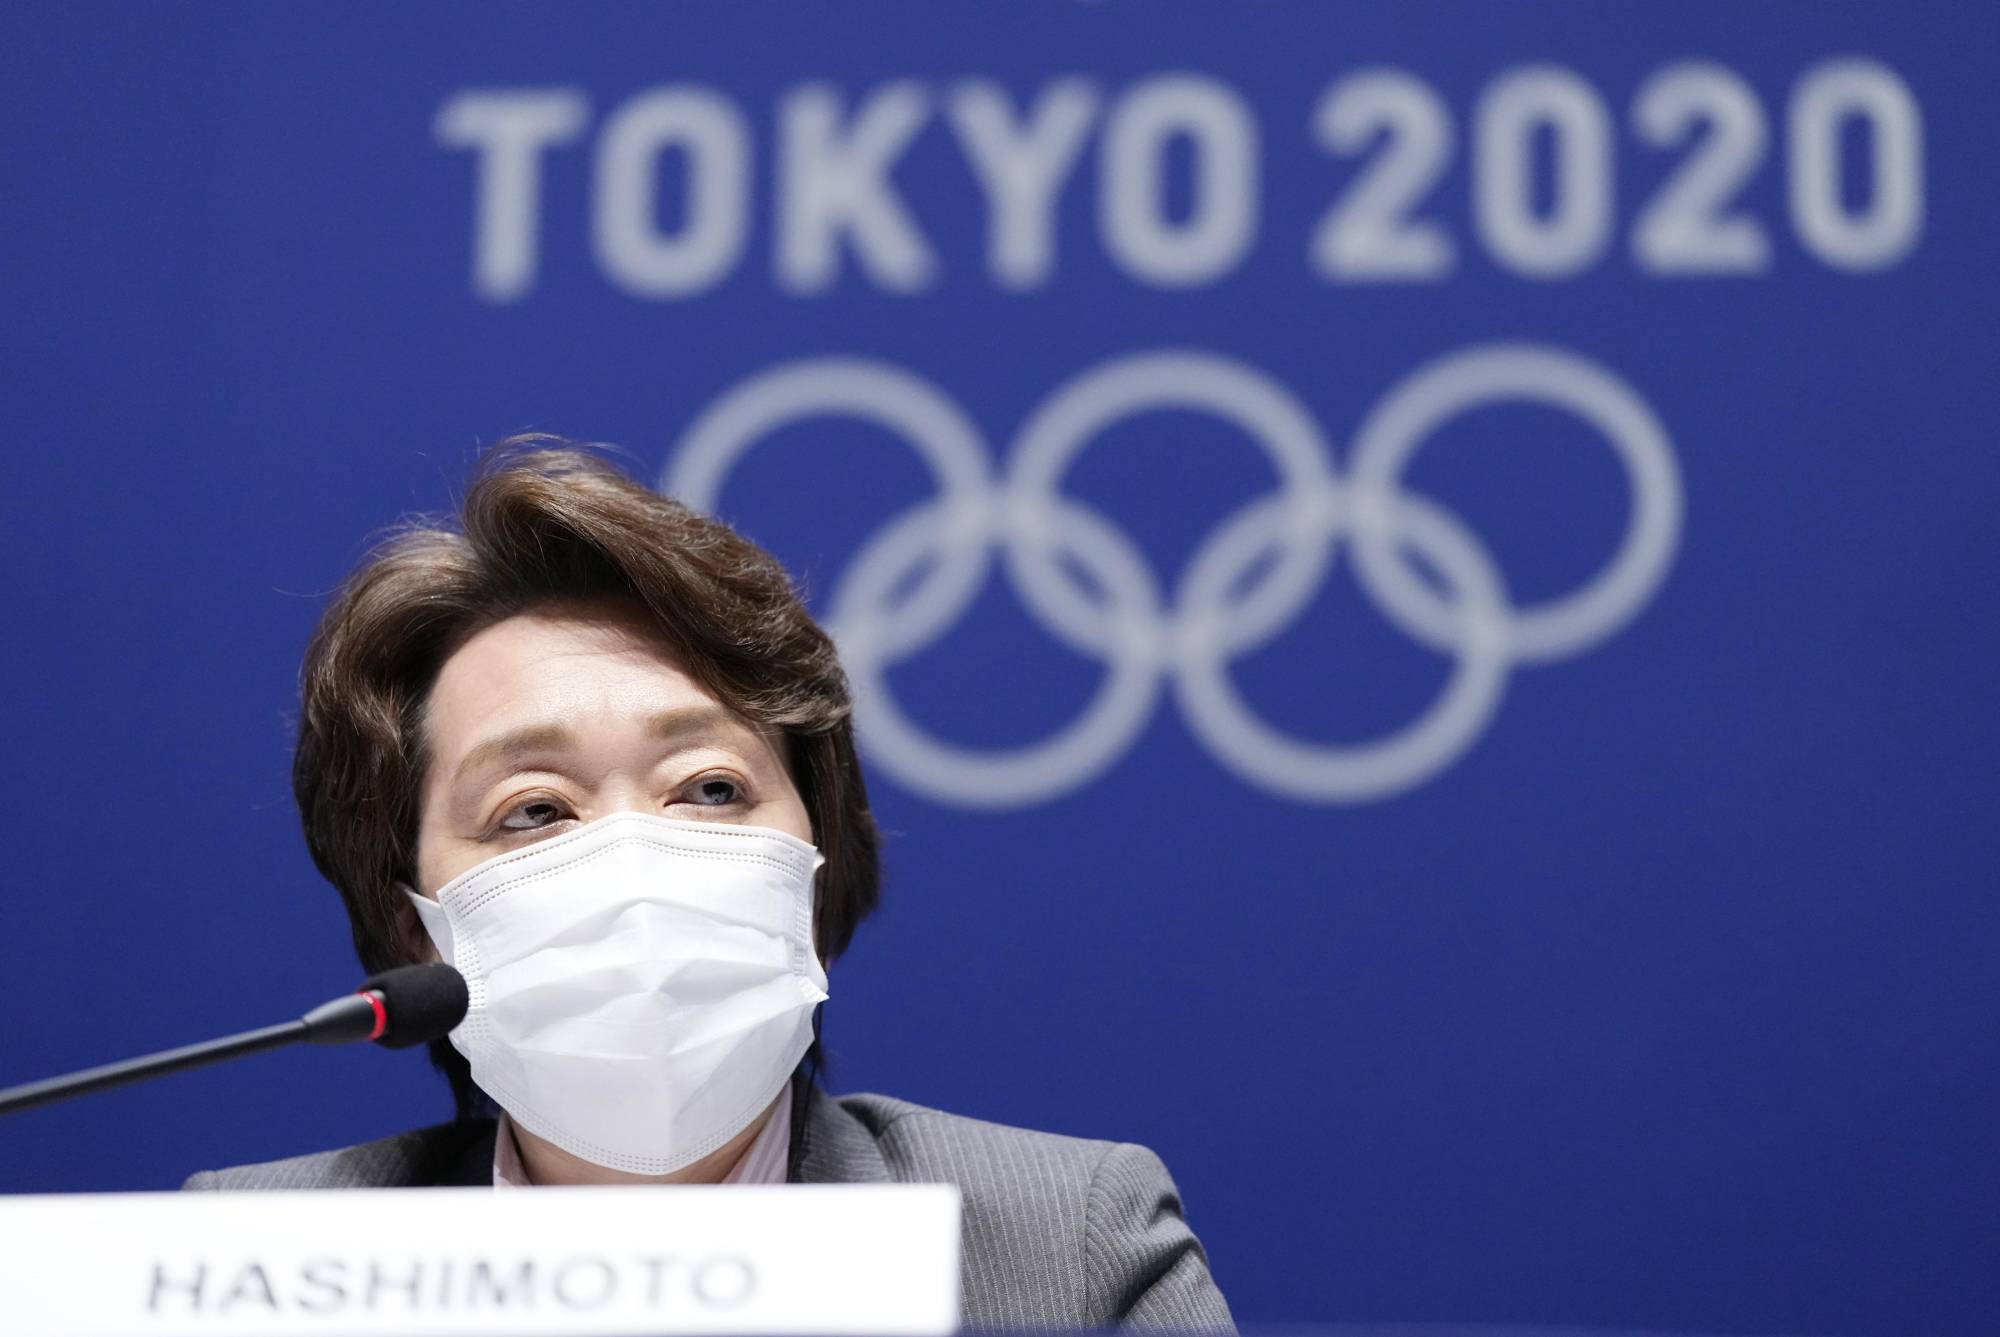 Seiko Hashimoto, president of the Tokyo Organisng Committee, attends a news conference in Tokyo on Thursday. | KYODO